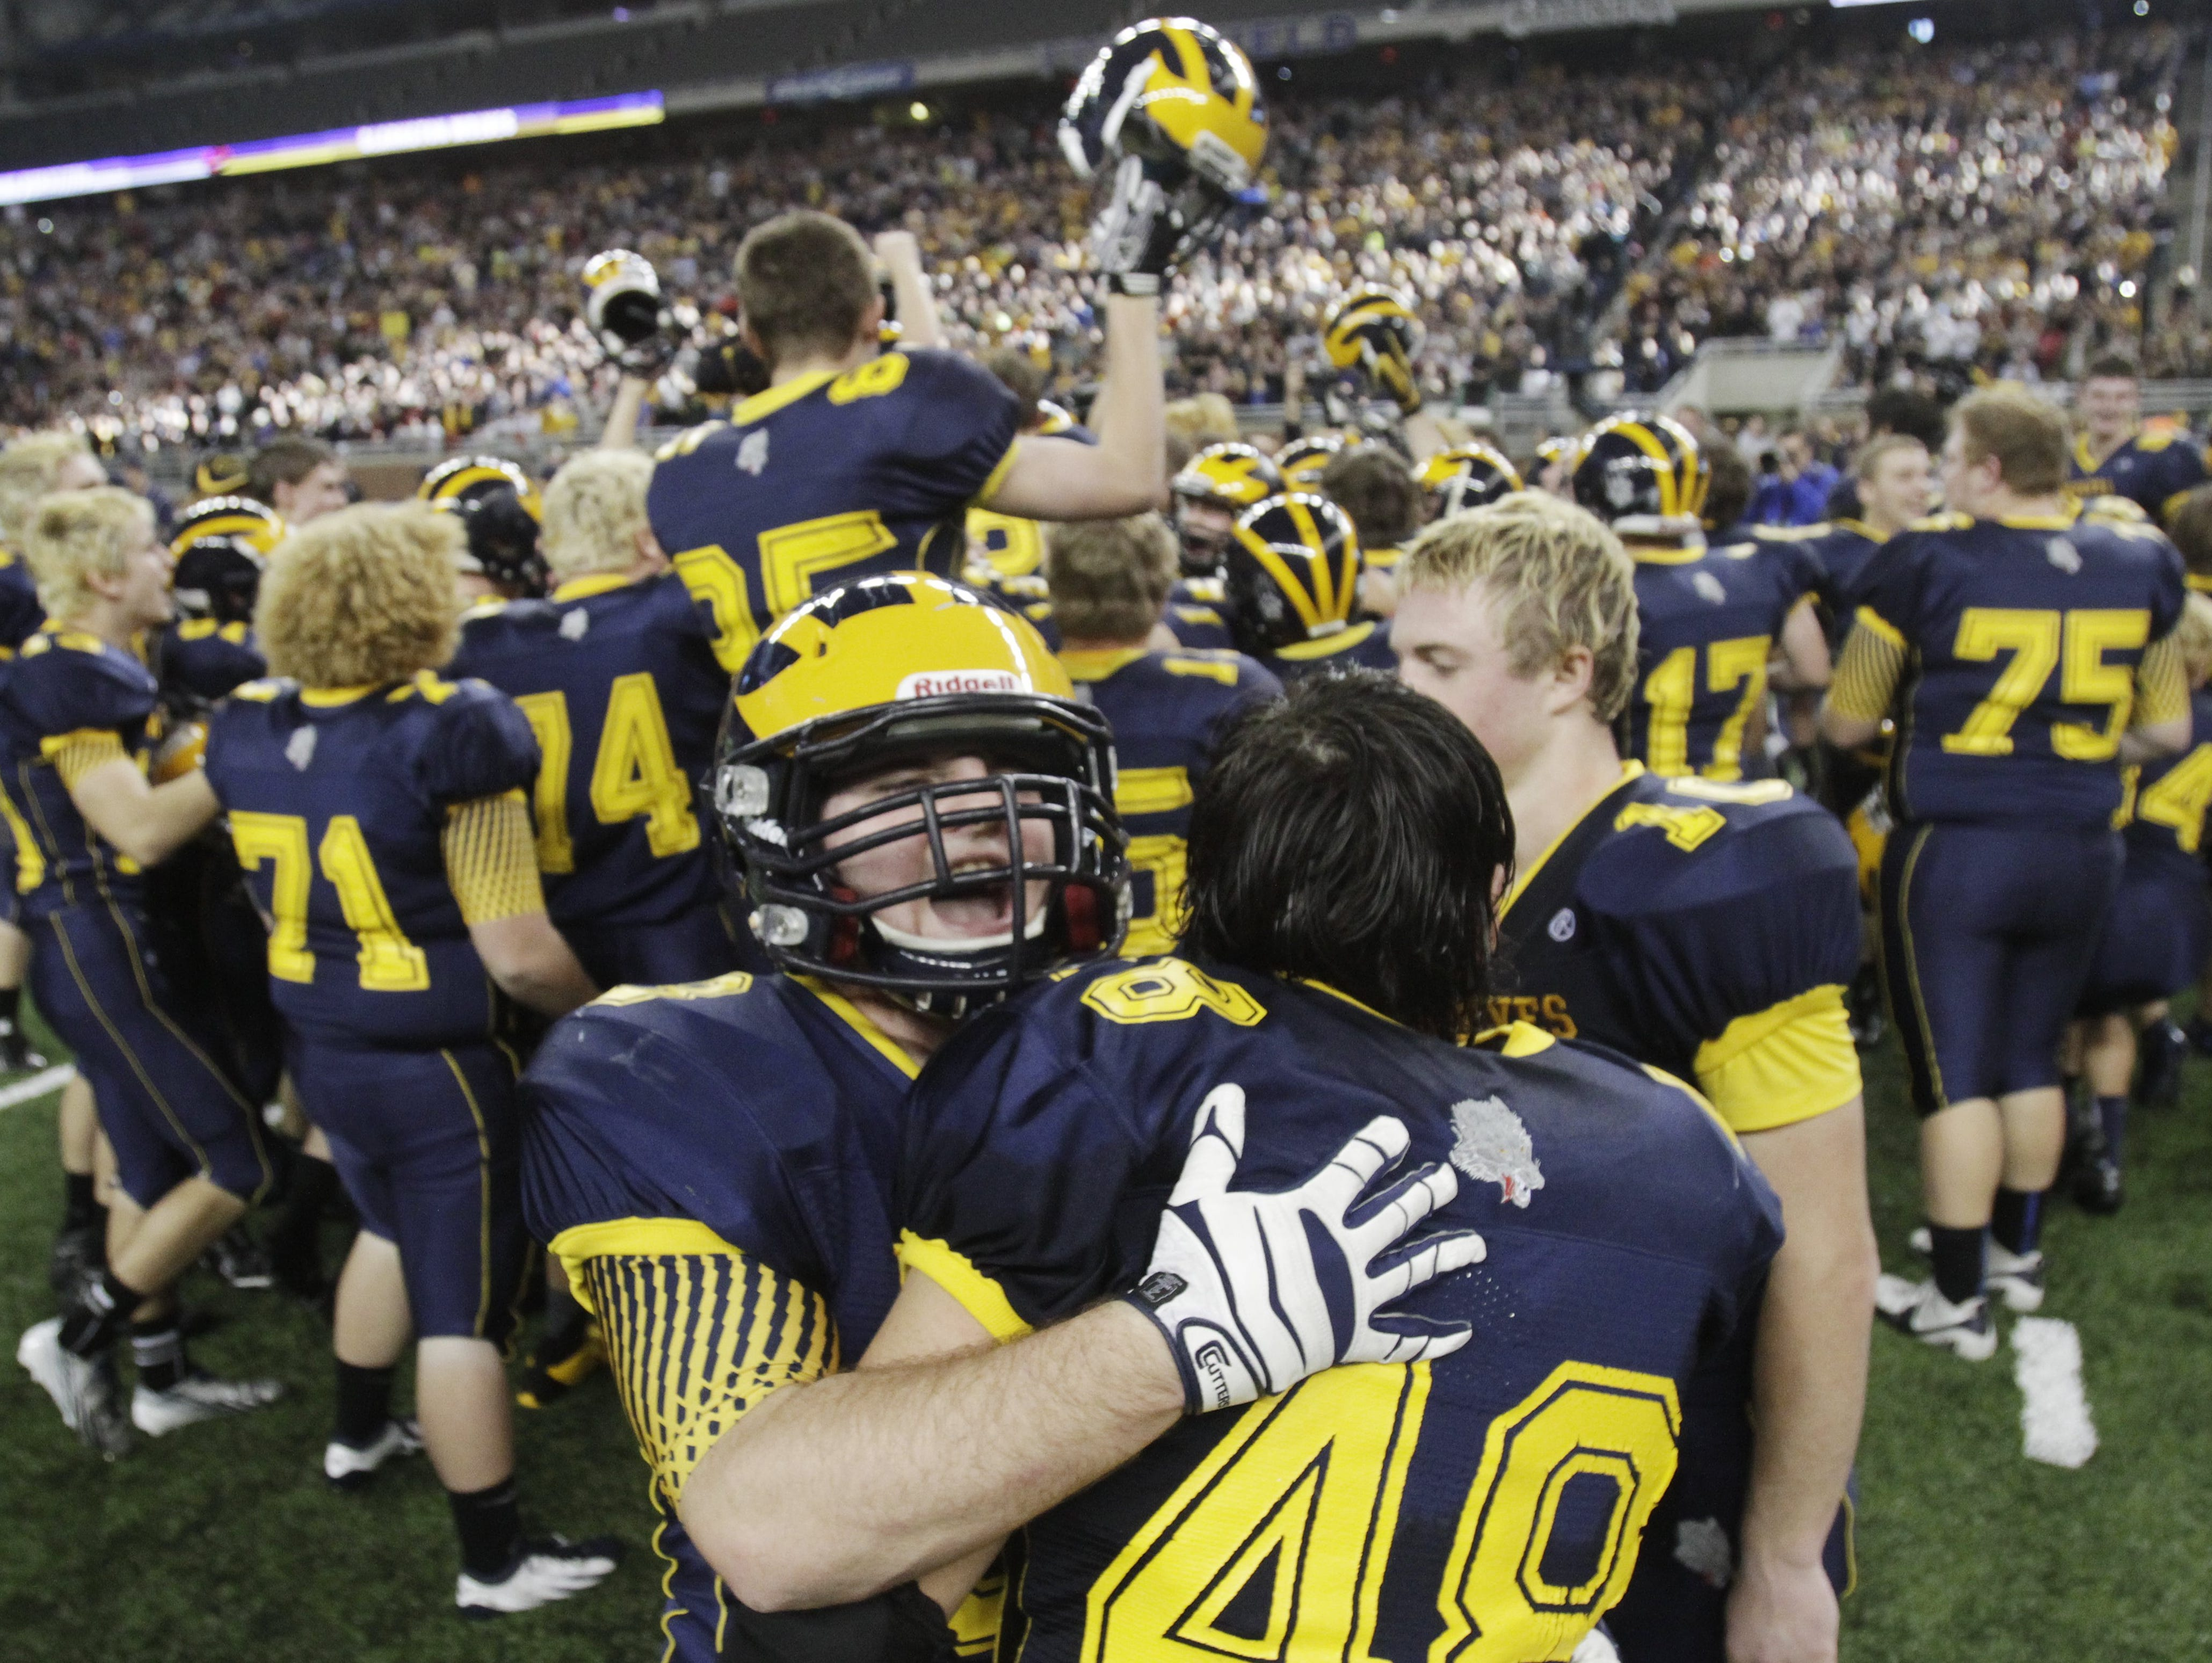 Clarkston players celebrate their Division 1 title win against Novi Detroit Catholic Central on Nov. 30, 2013, at Ford Field.